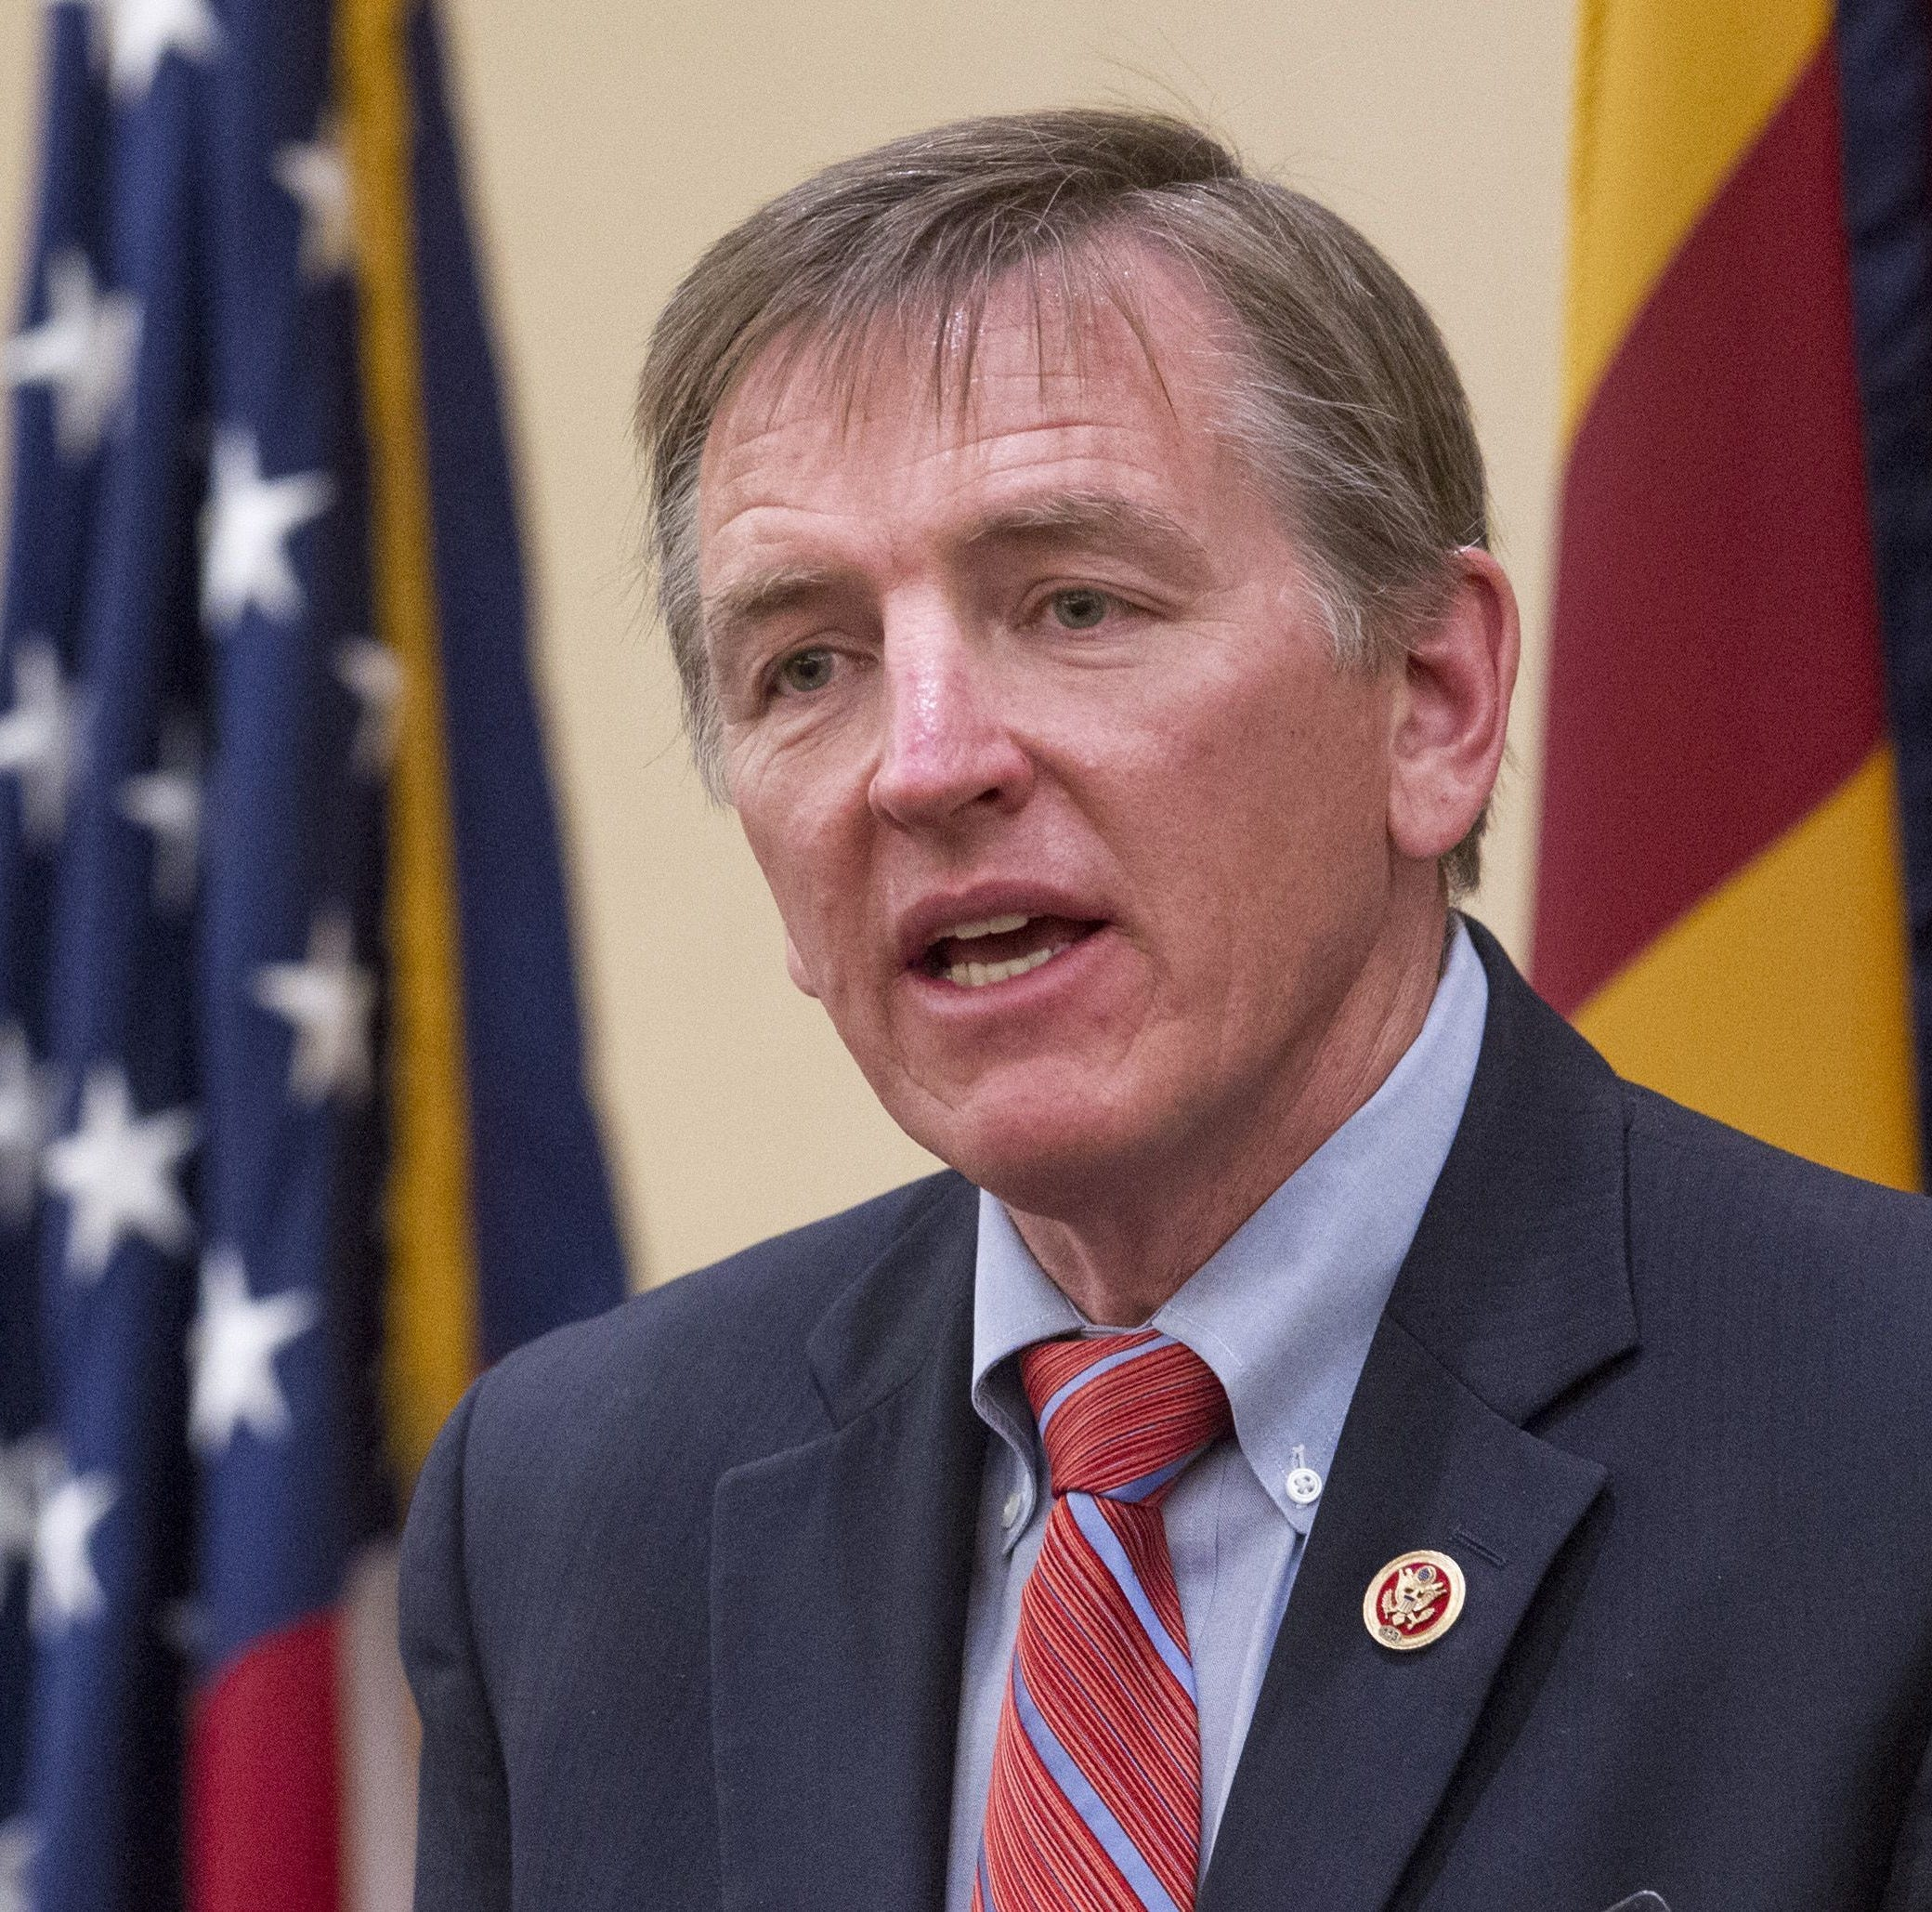 Rep. Paul Gosar rails against waste, then spends more on travel than anyone